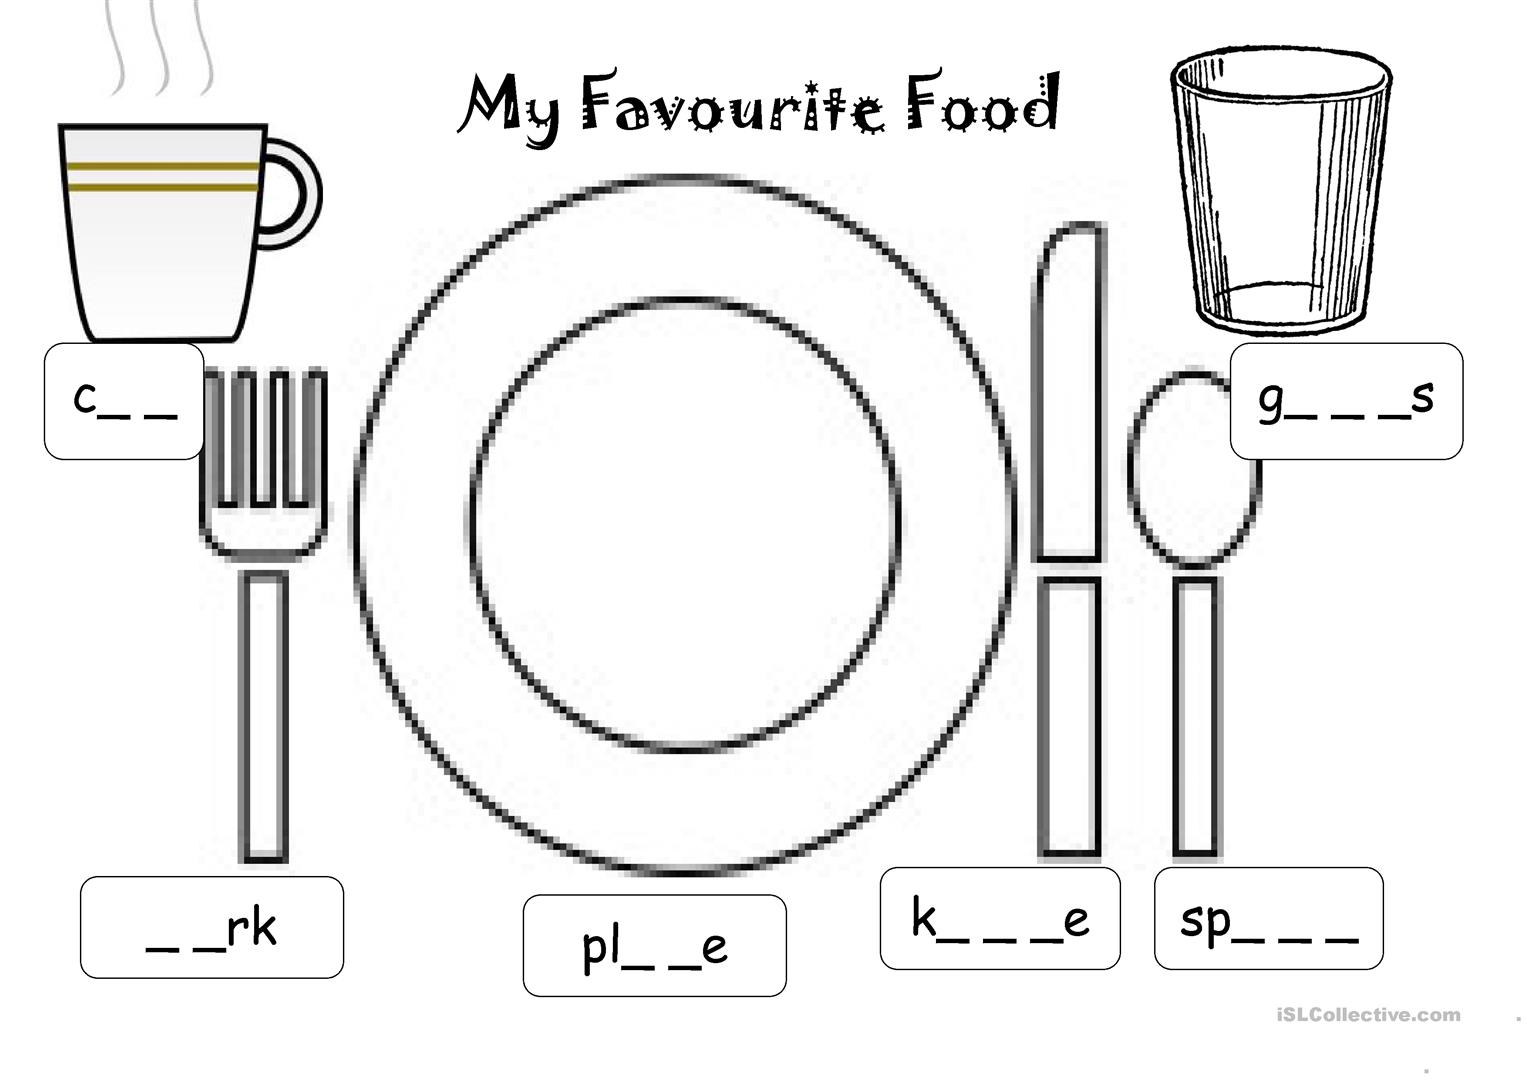 Favourite Food Worksheet